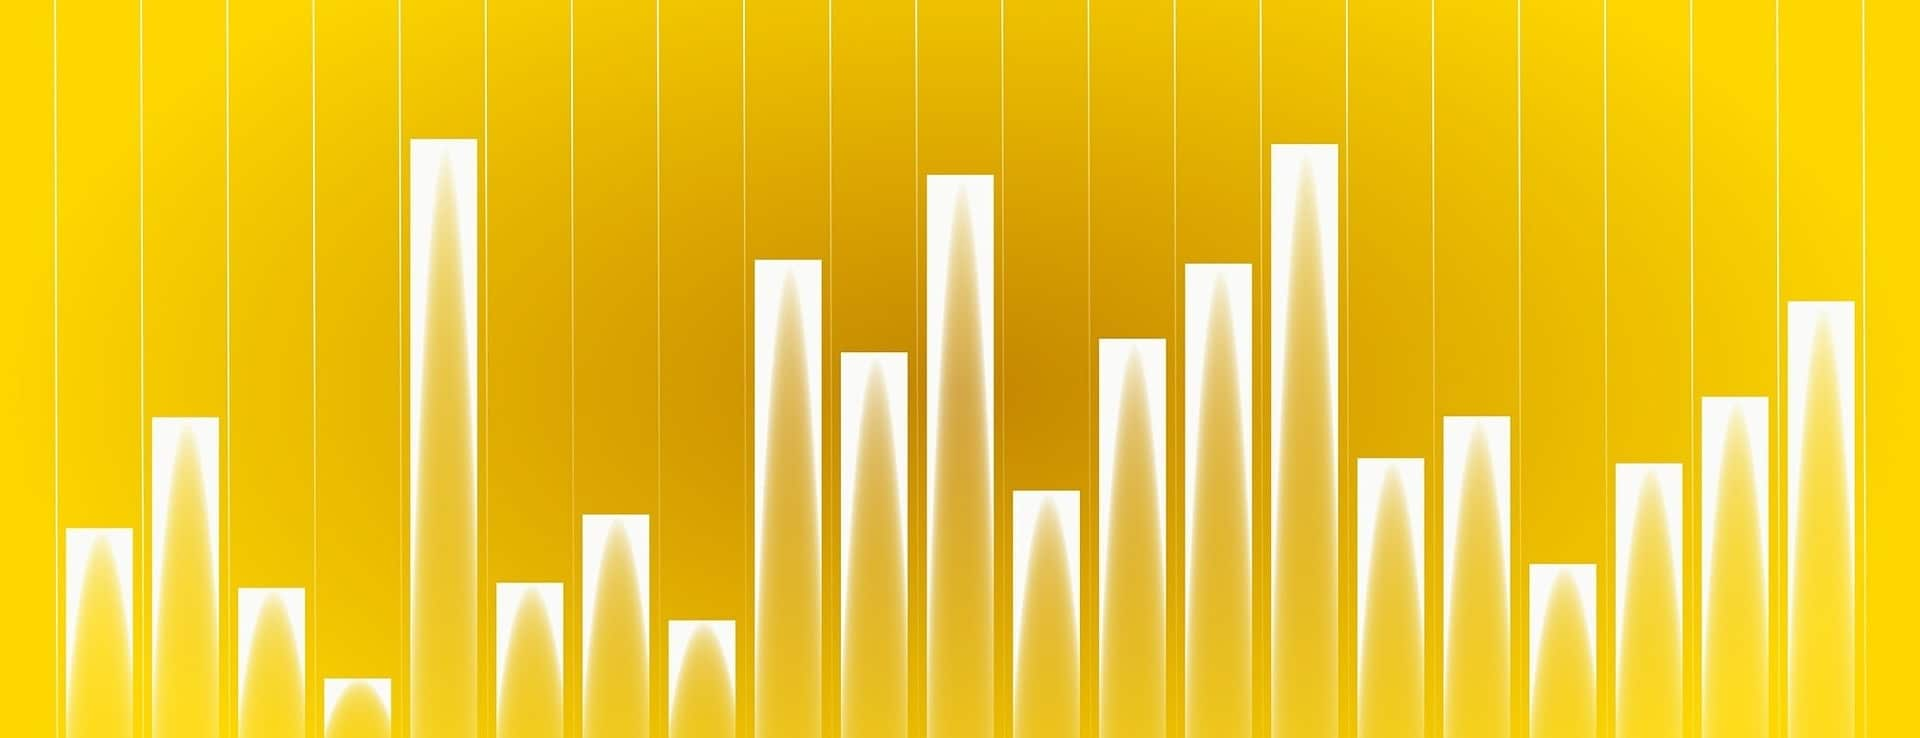 bar graph showing different heights in gold